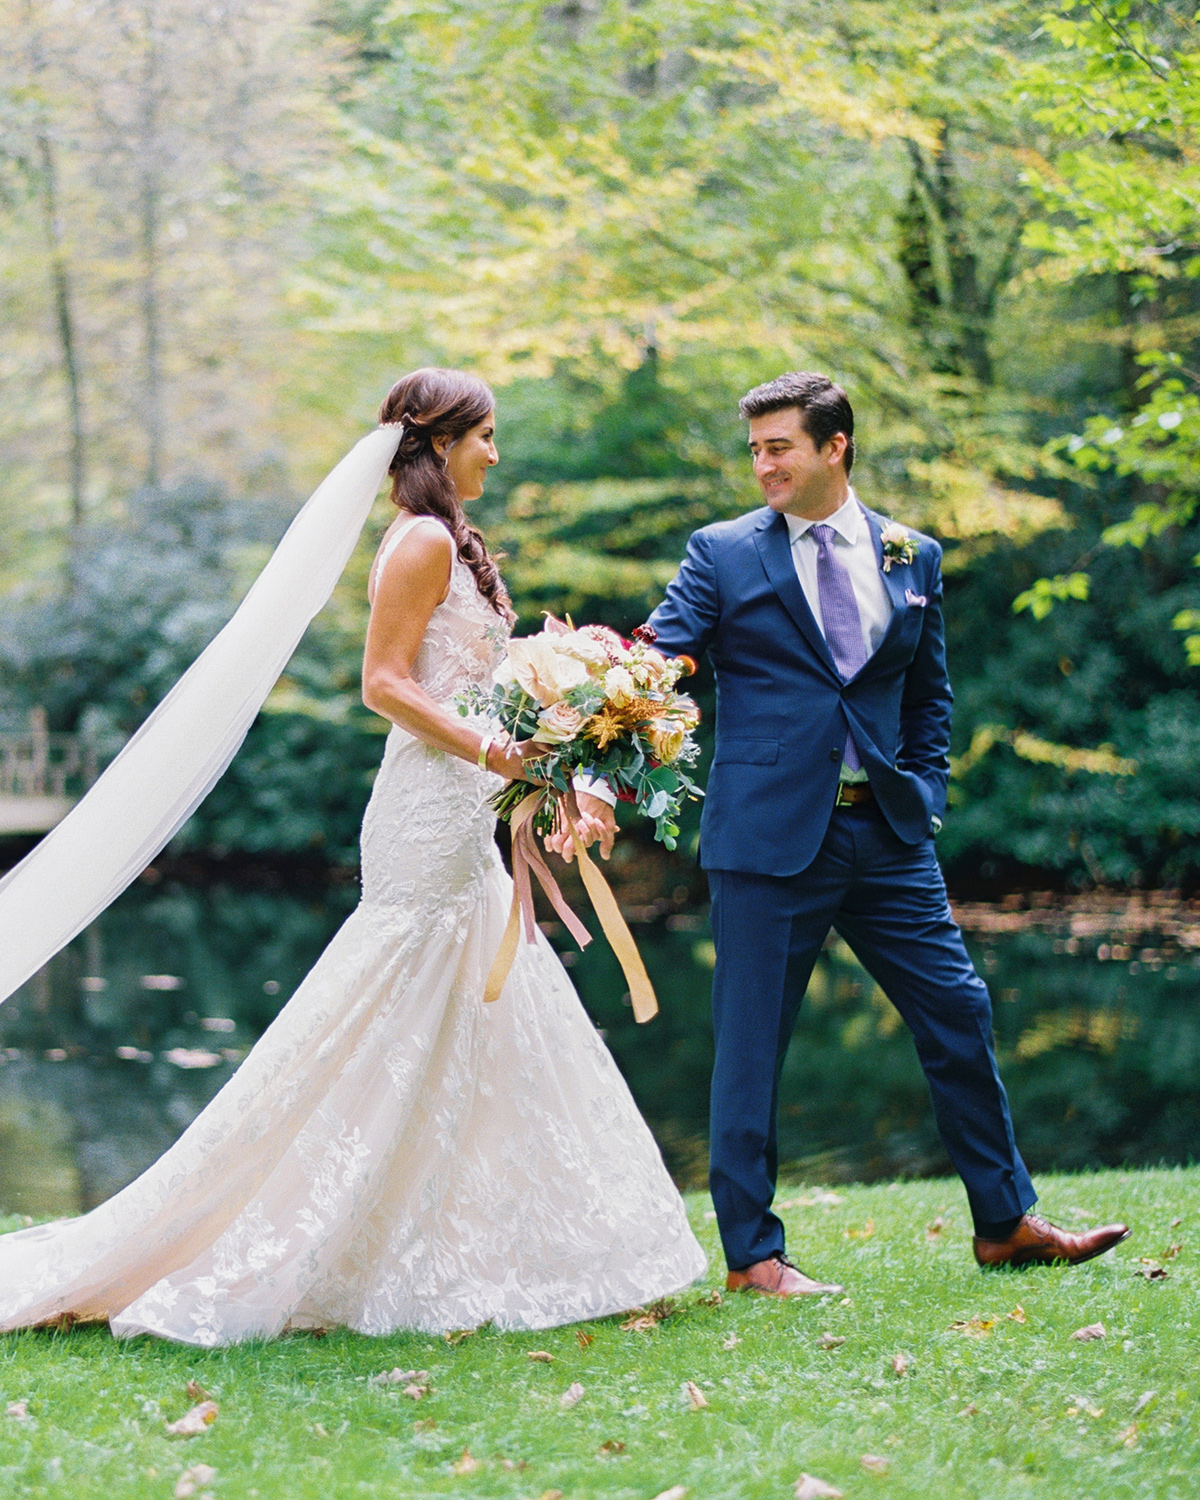 Bride and groom walking together in grass